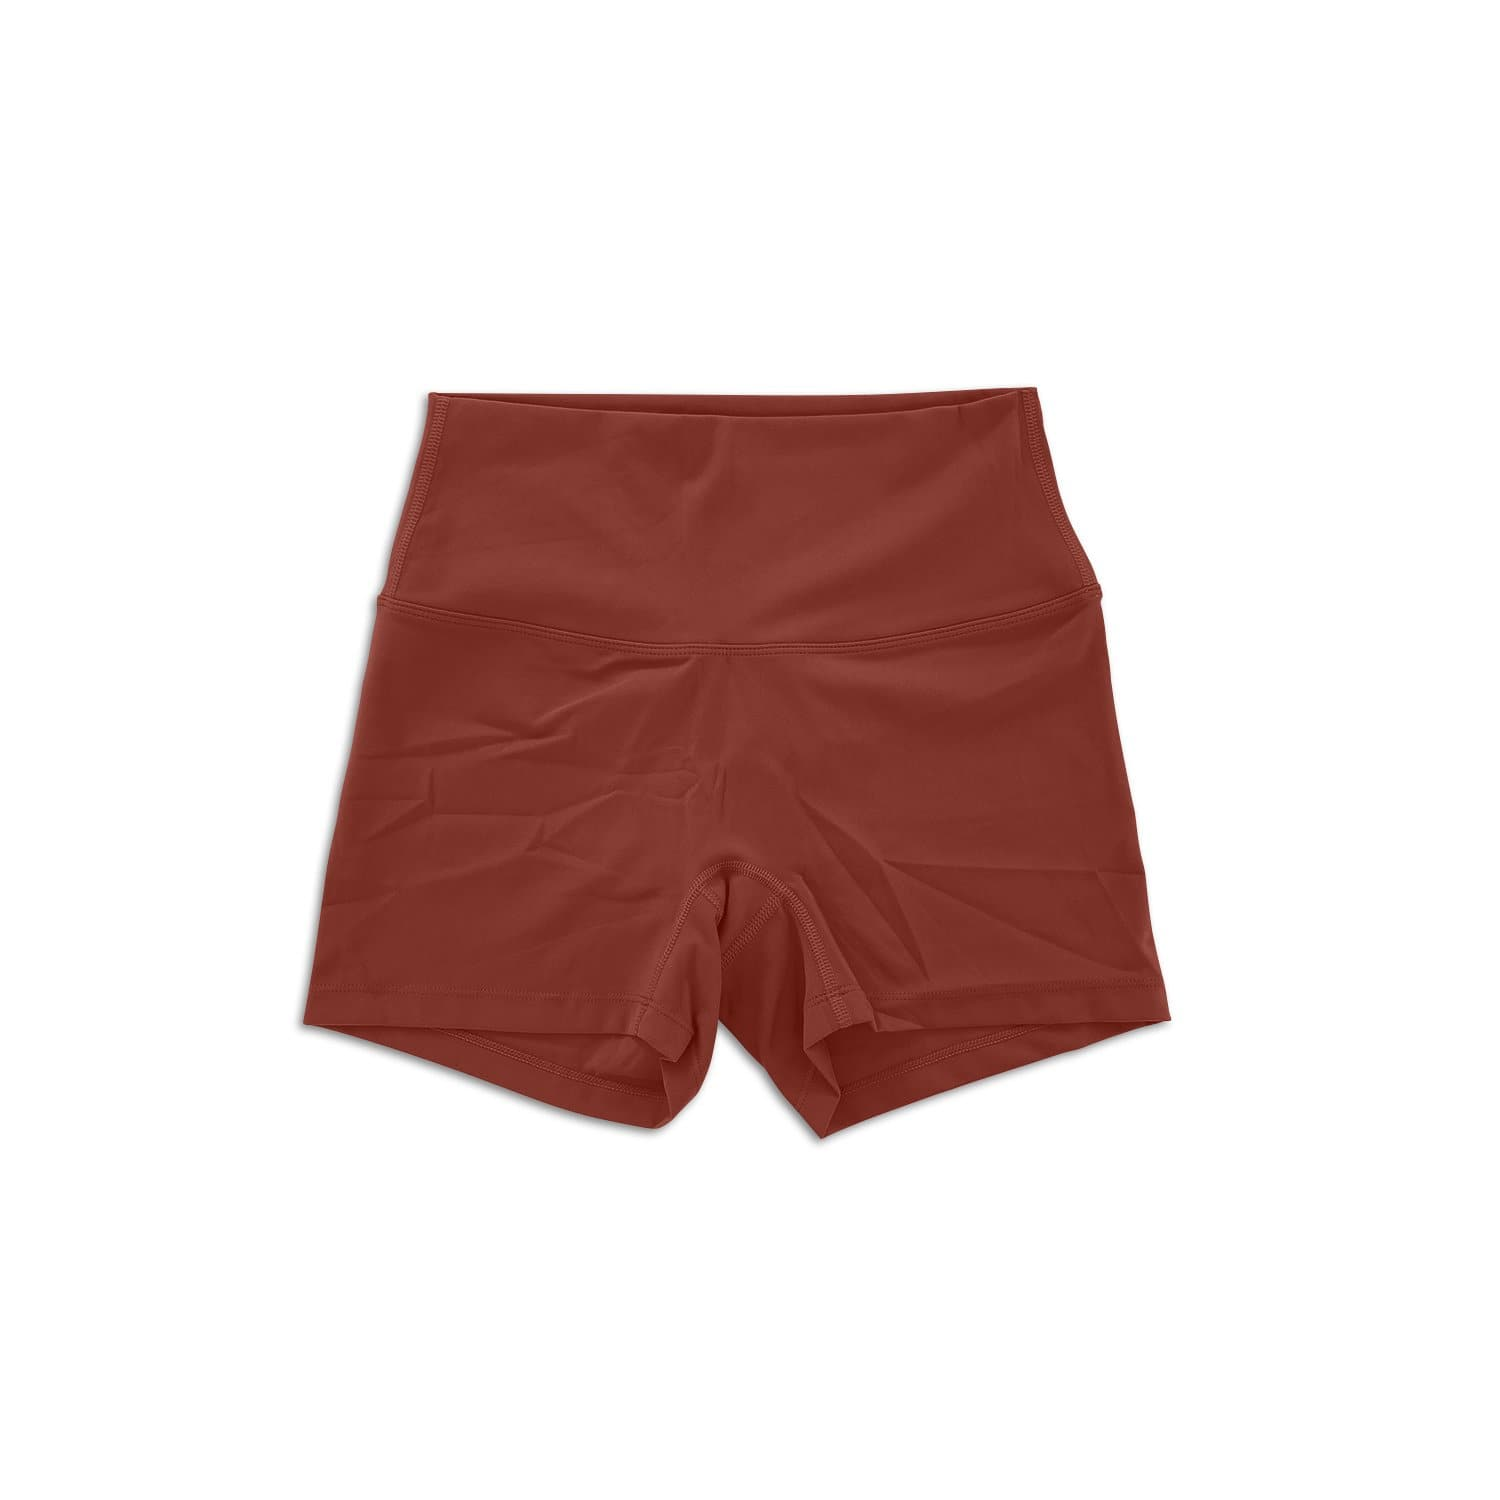 Bare Classic Conceal Active Shorts - Brick